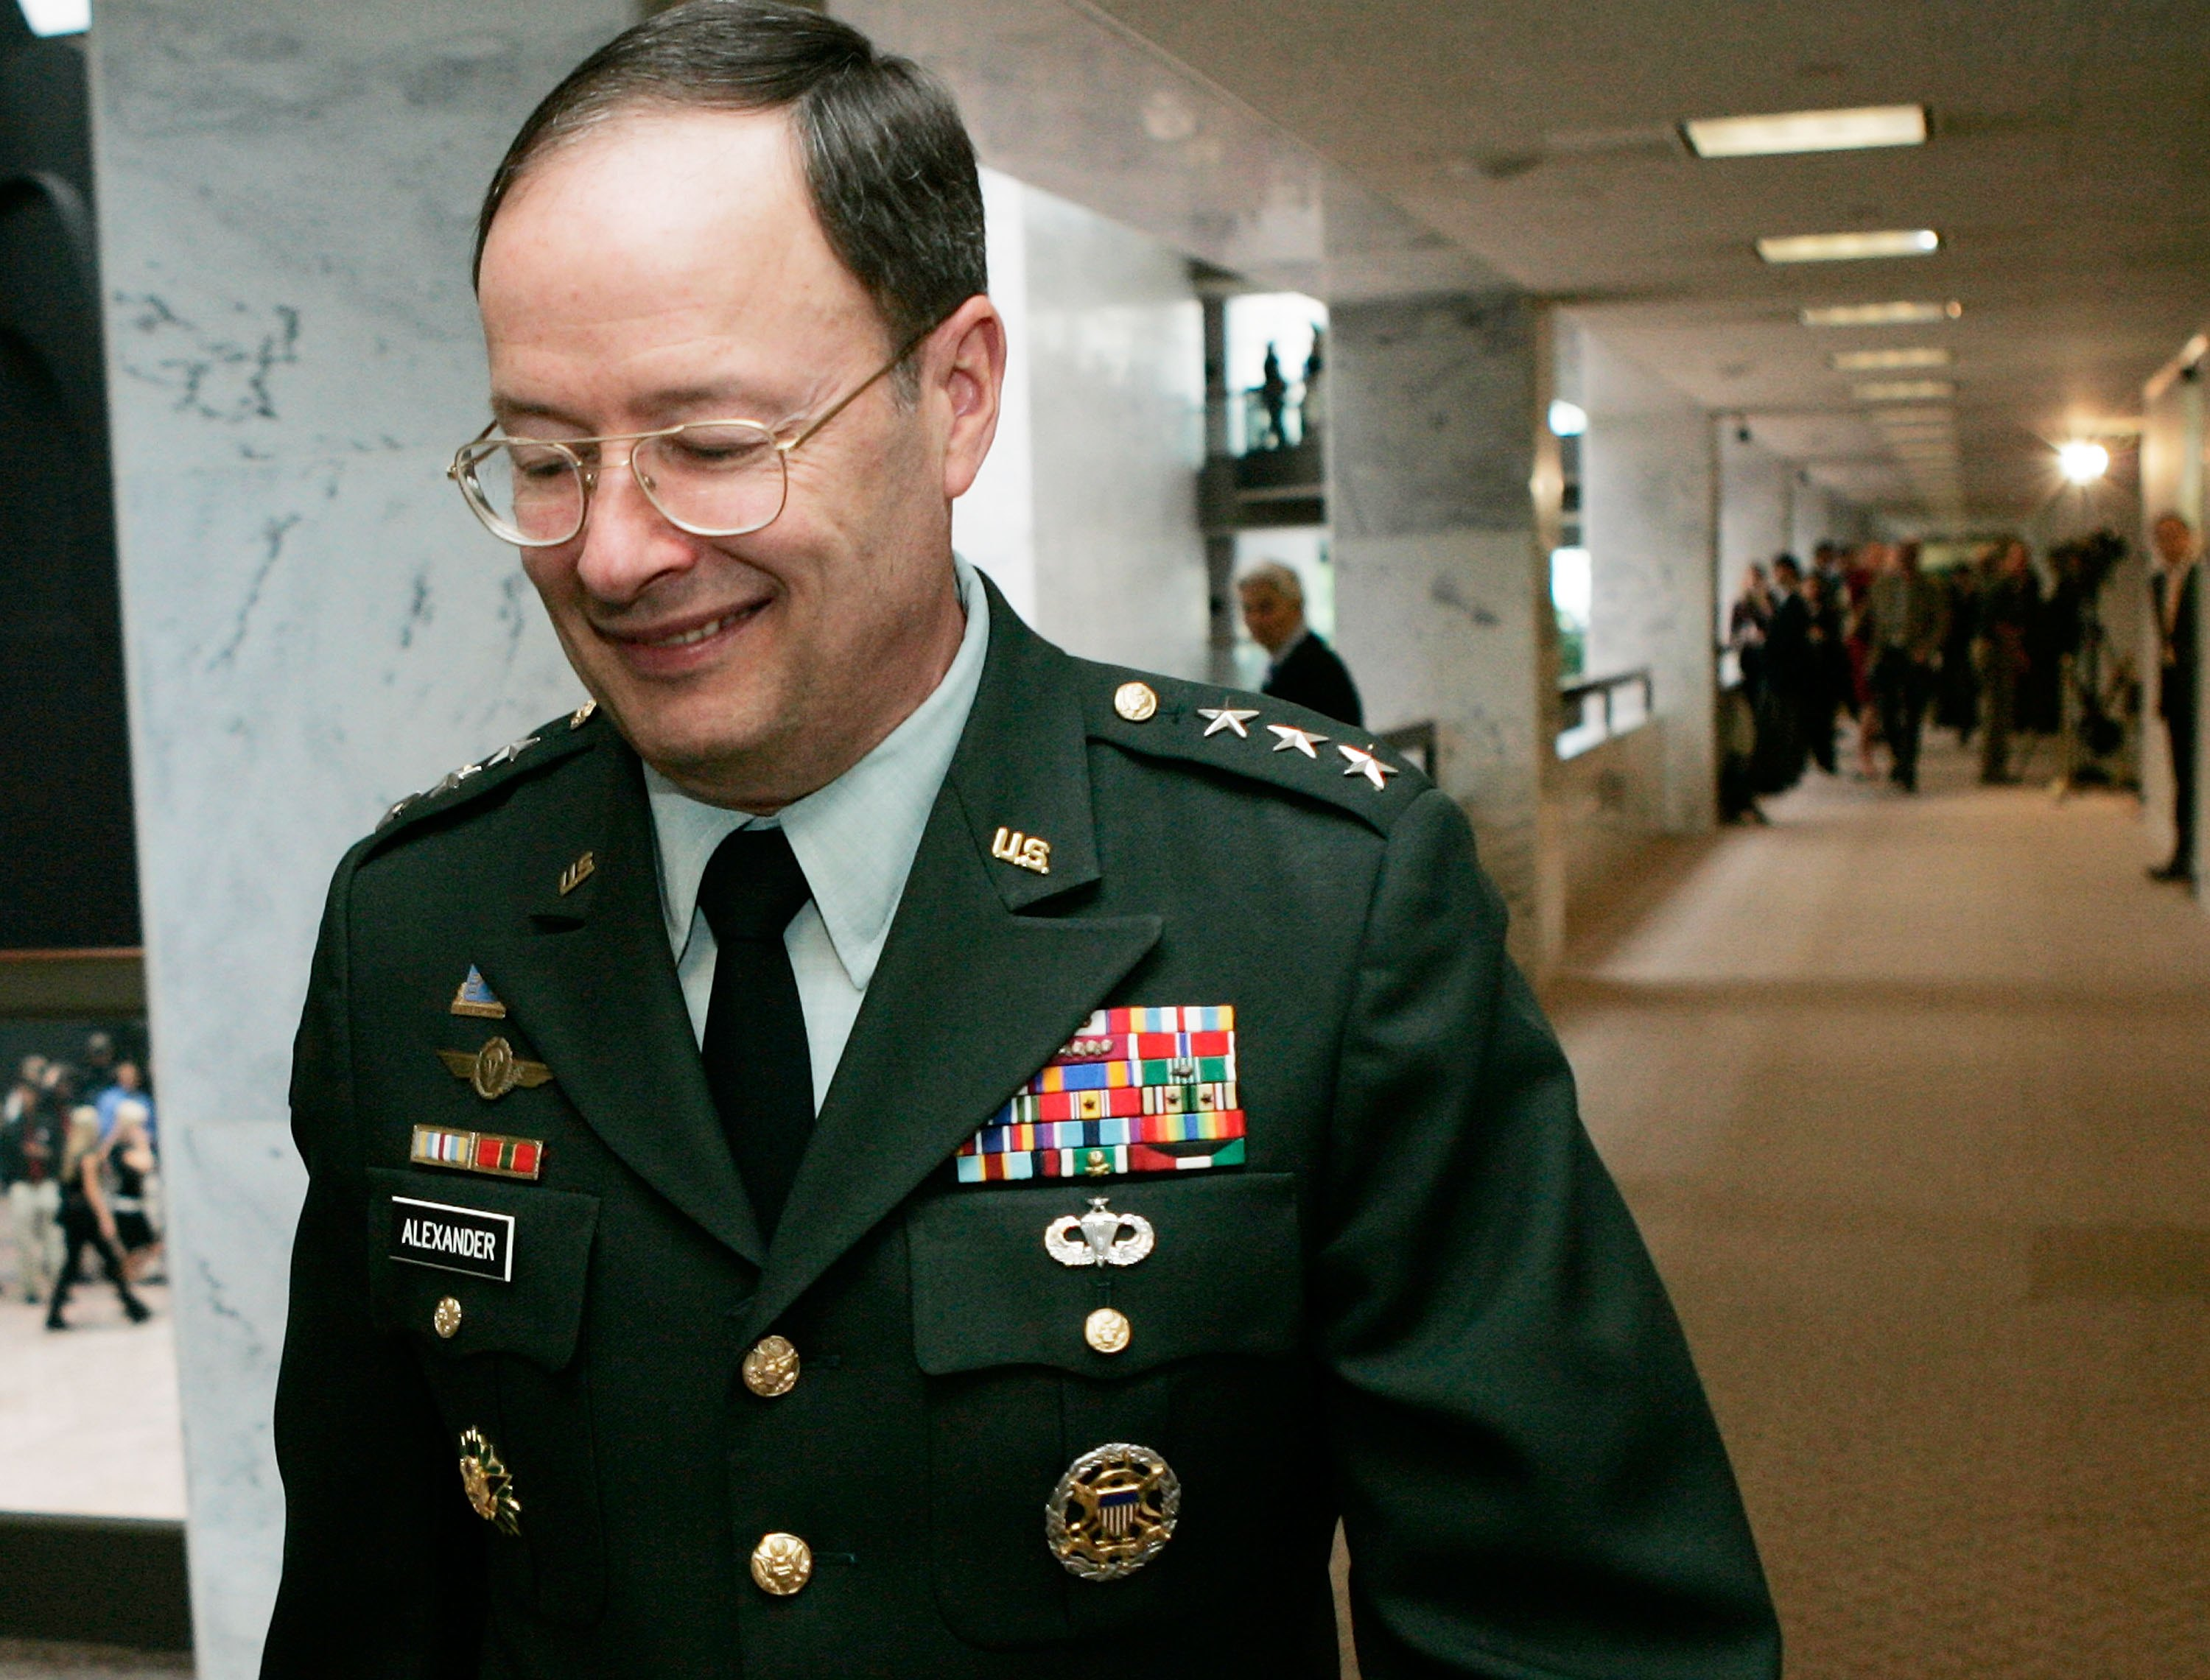 NSA director Keith Alexander, shown here in a file photo, who's also the commander of the U.S. Cyber Command.